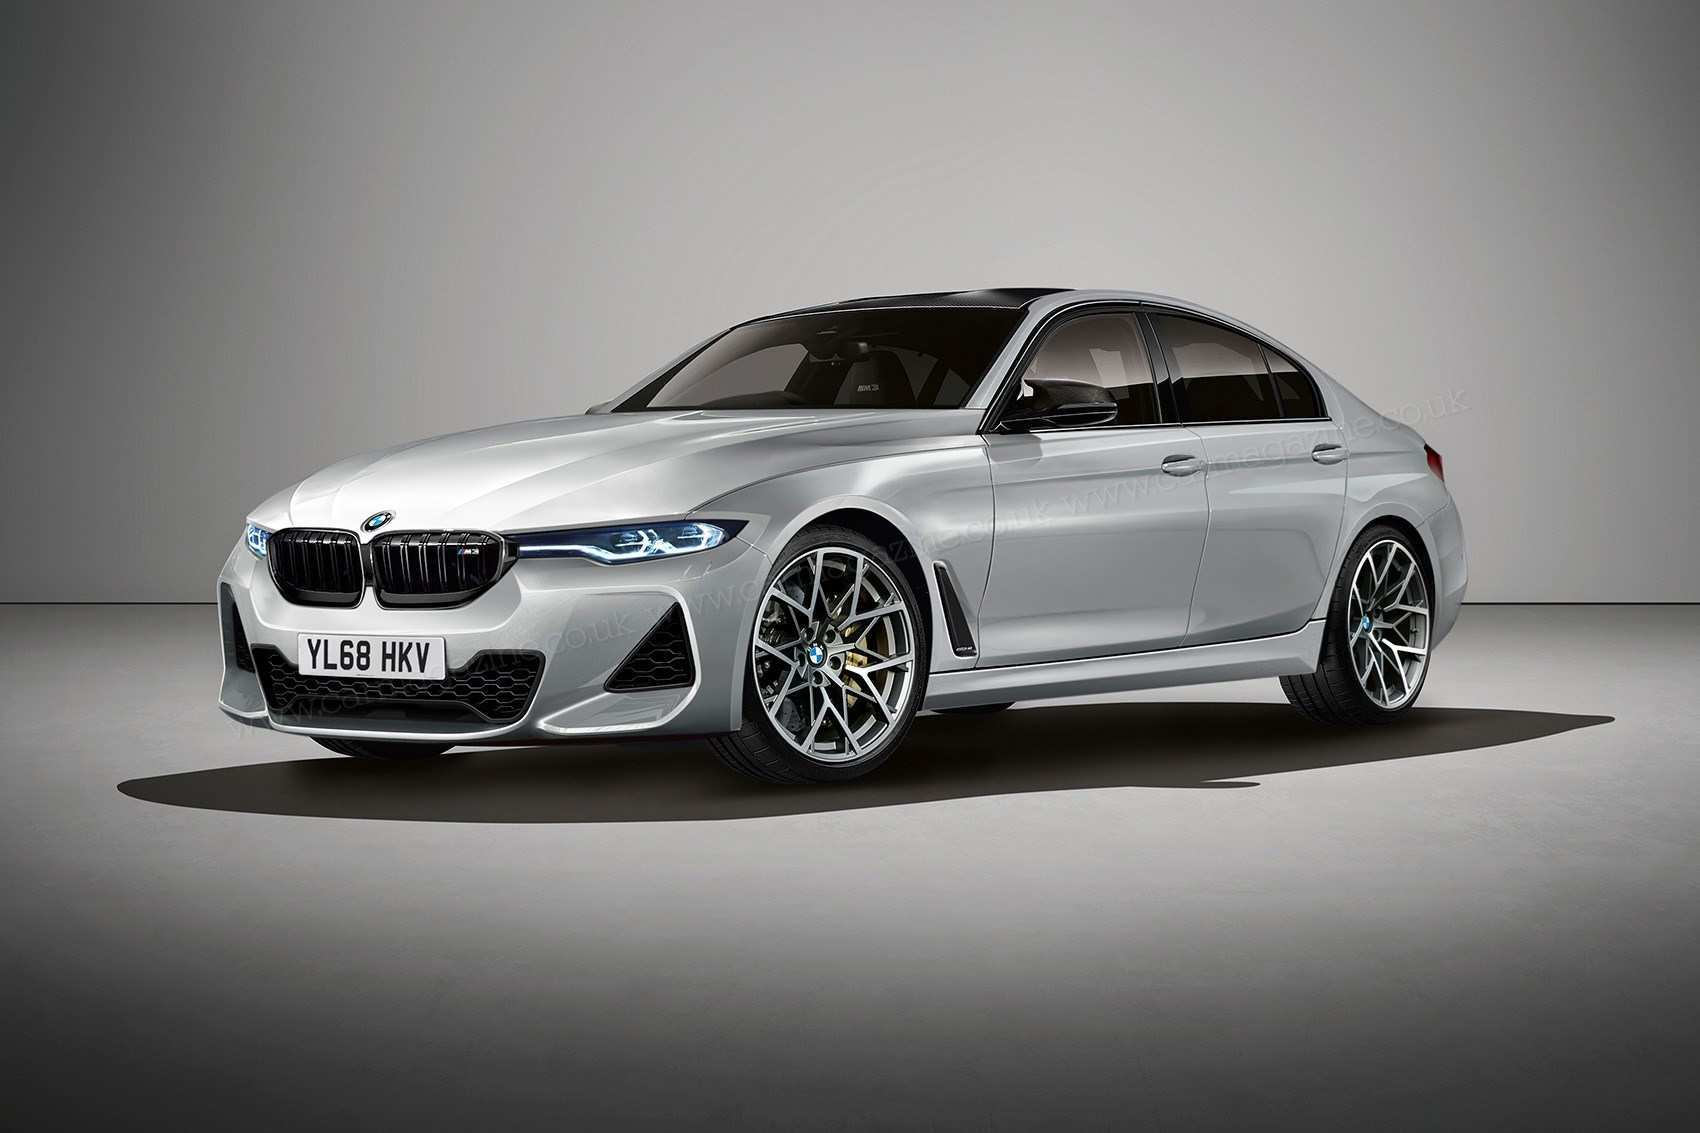 65 Best 2020 Bmw M4 Release Date Review